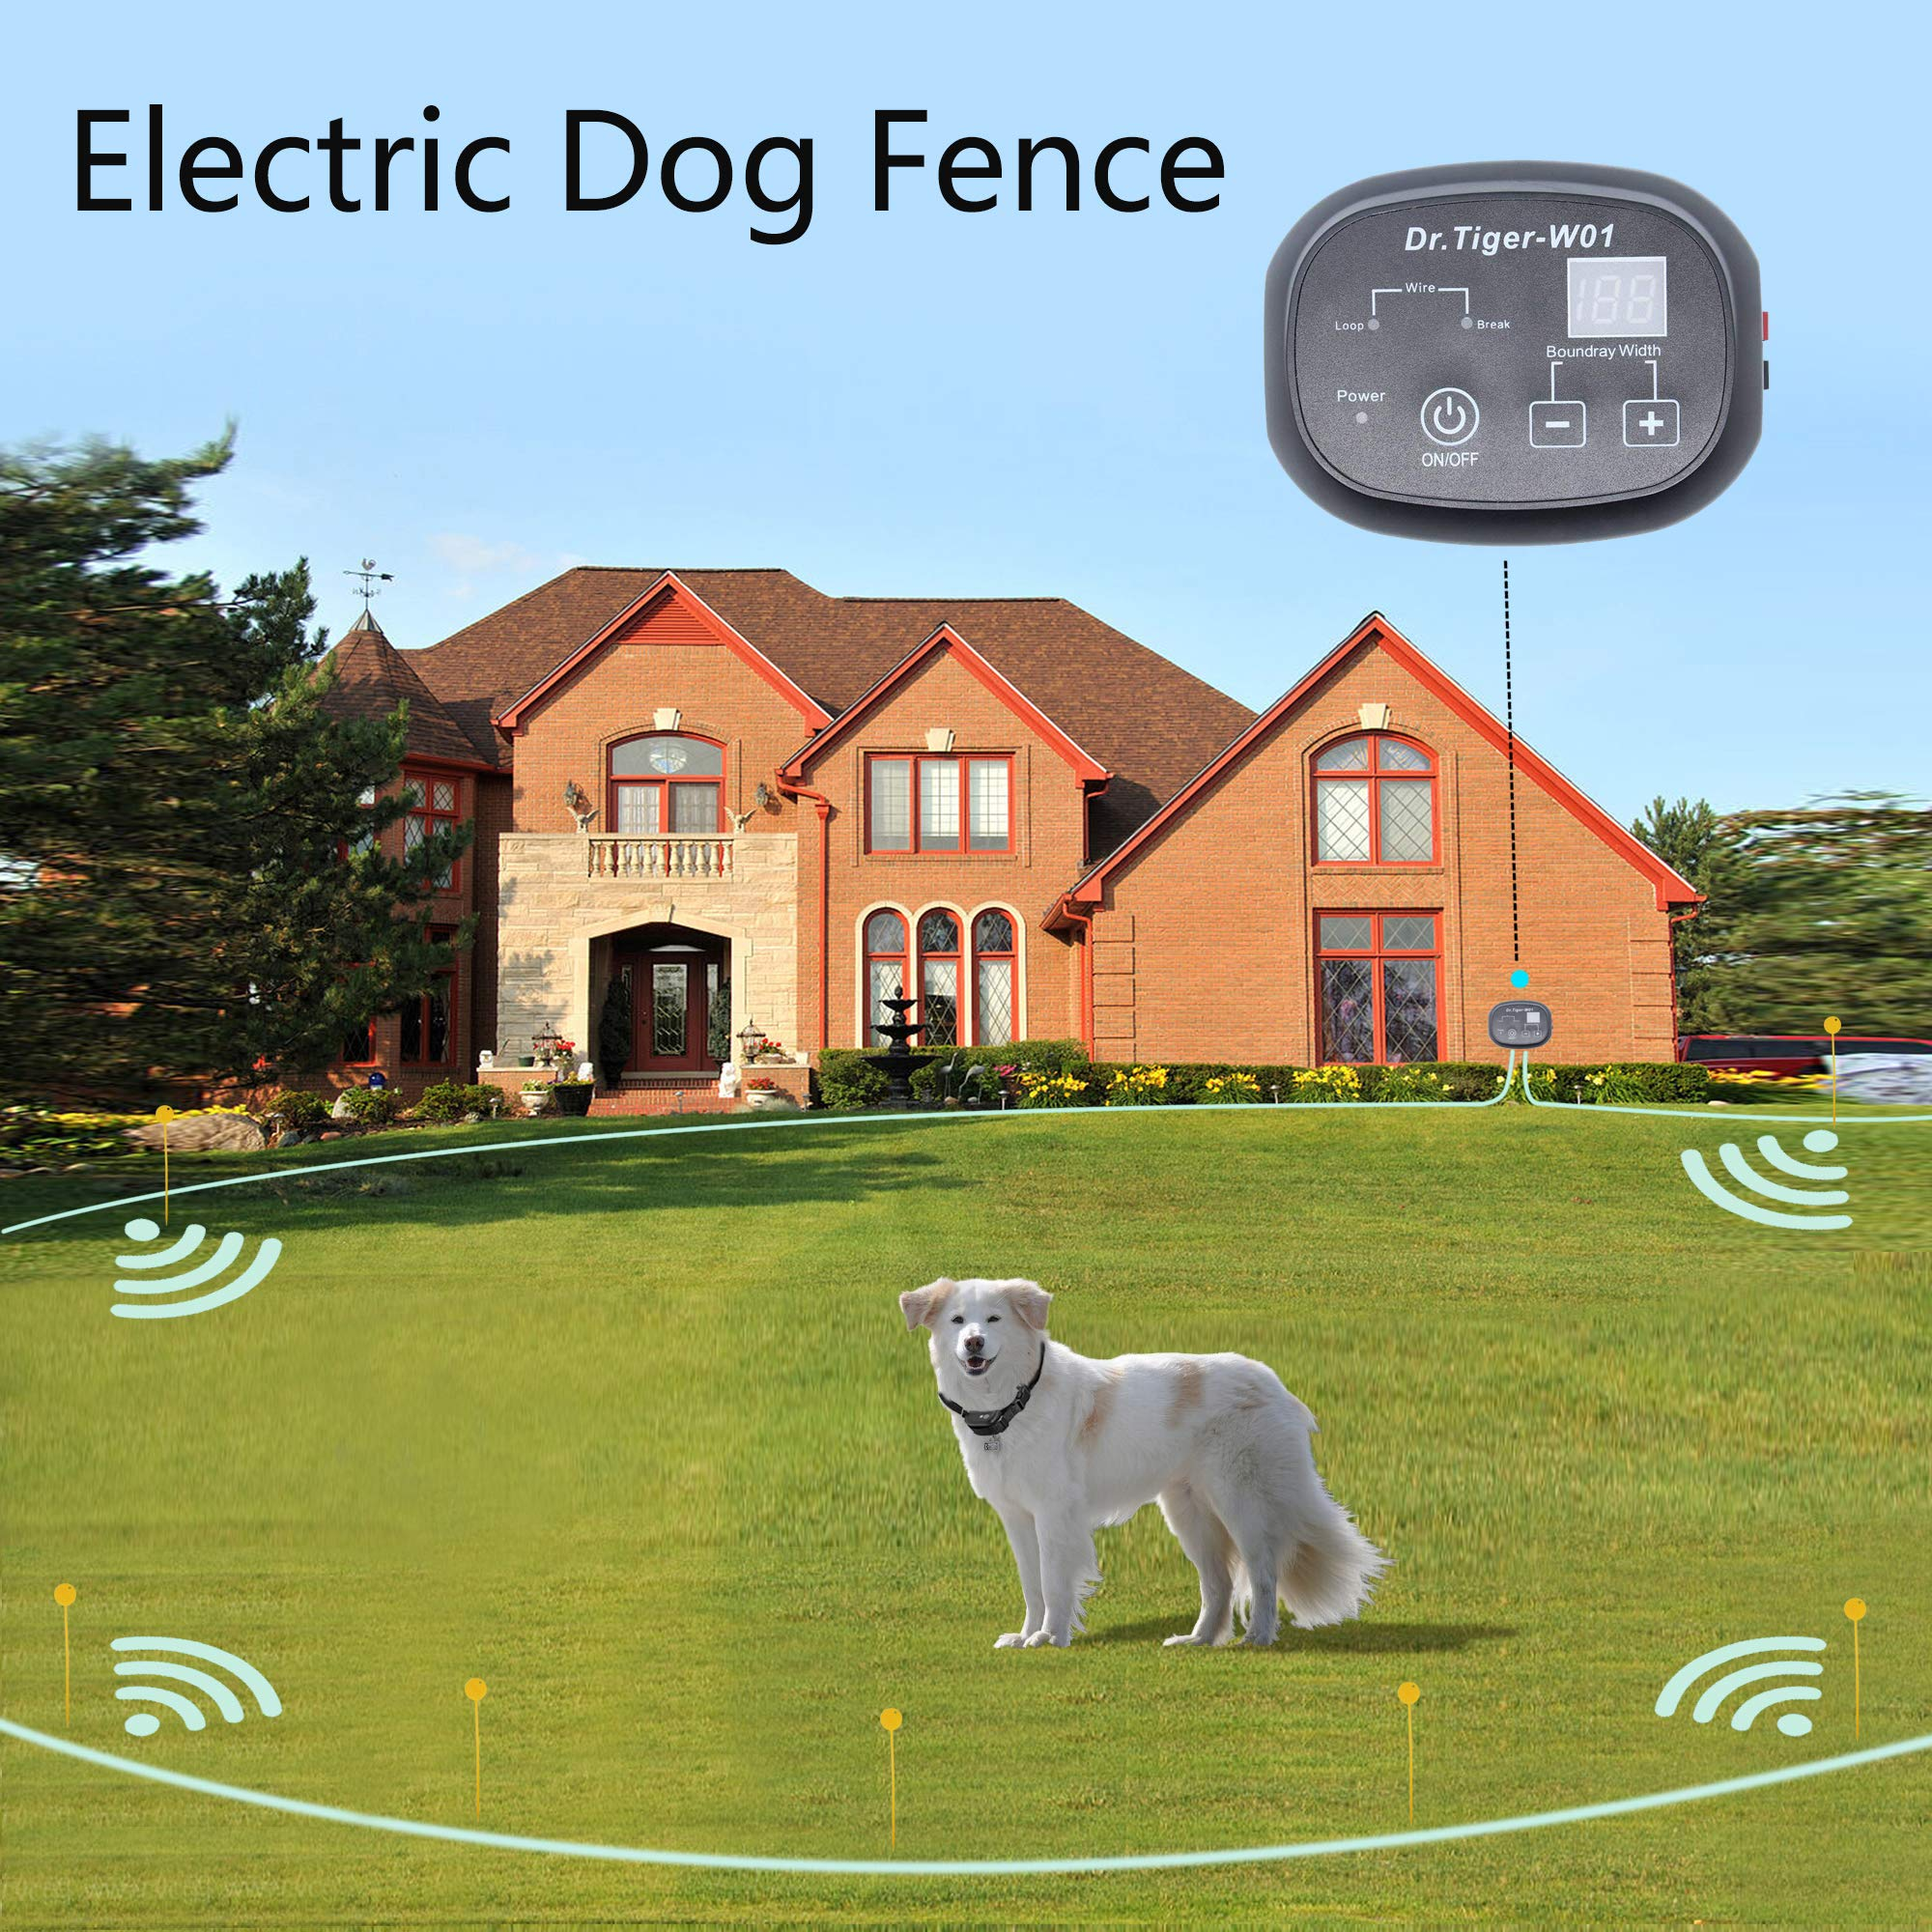 Dr.Tiger 1 Receiver Electric Dog Fence, Invisible Fence for Dogs, Collar Send Beeps and Shock Correction, Dark, 650 Feet by Dr.Tiger (Image #1)